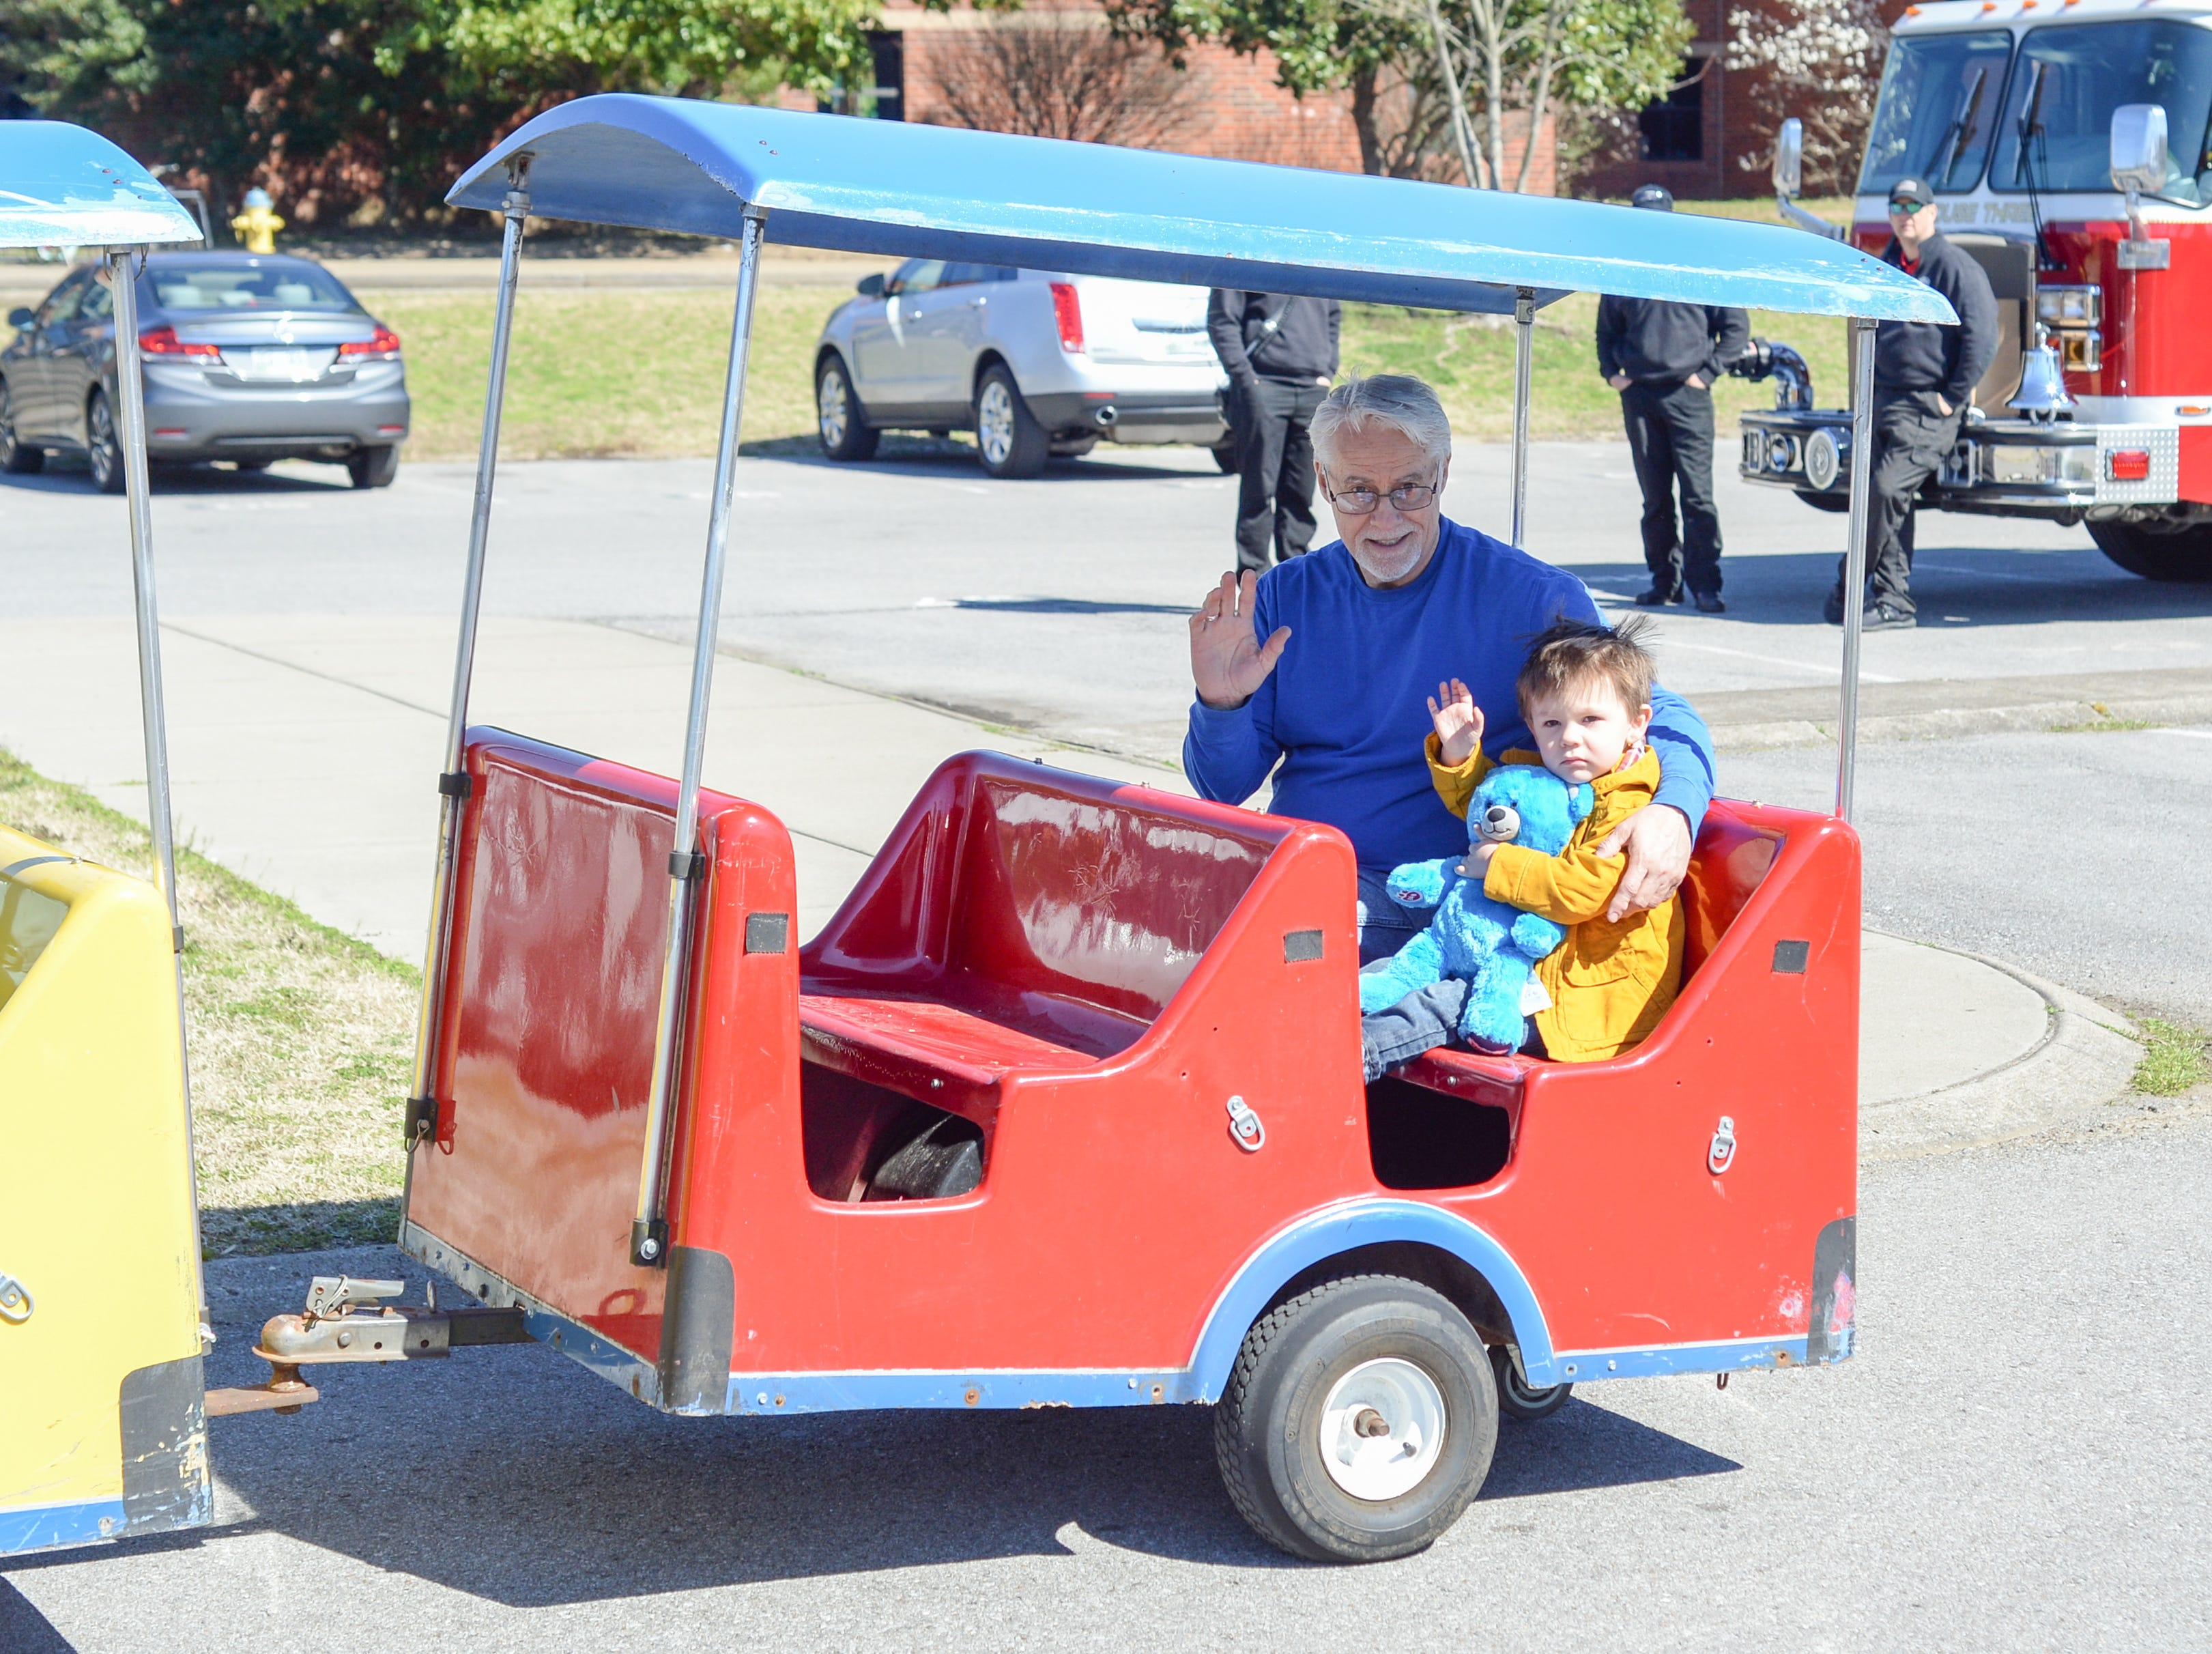 Train rides were available during the Mid TN Babies and Beyond Fest and Be Healthy Hendersonville Expo Presented by Hendersonville Area Chamber of Commerce at Hendersonville High School on Saturday, March 16.